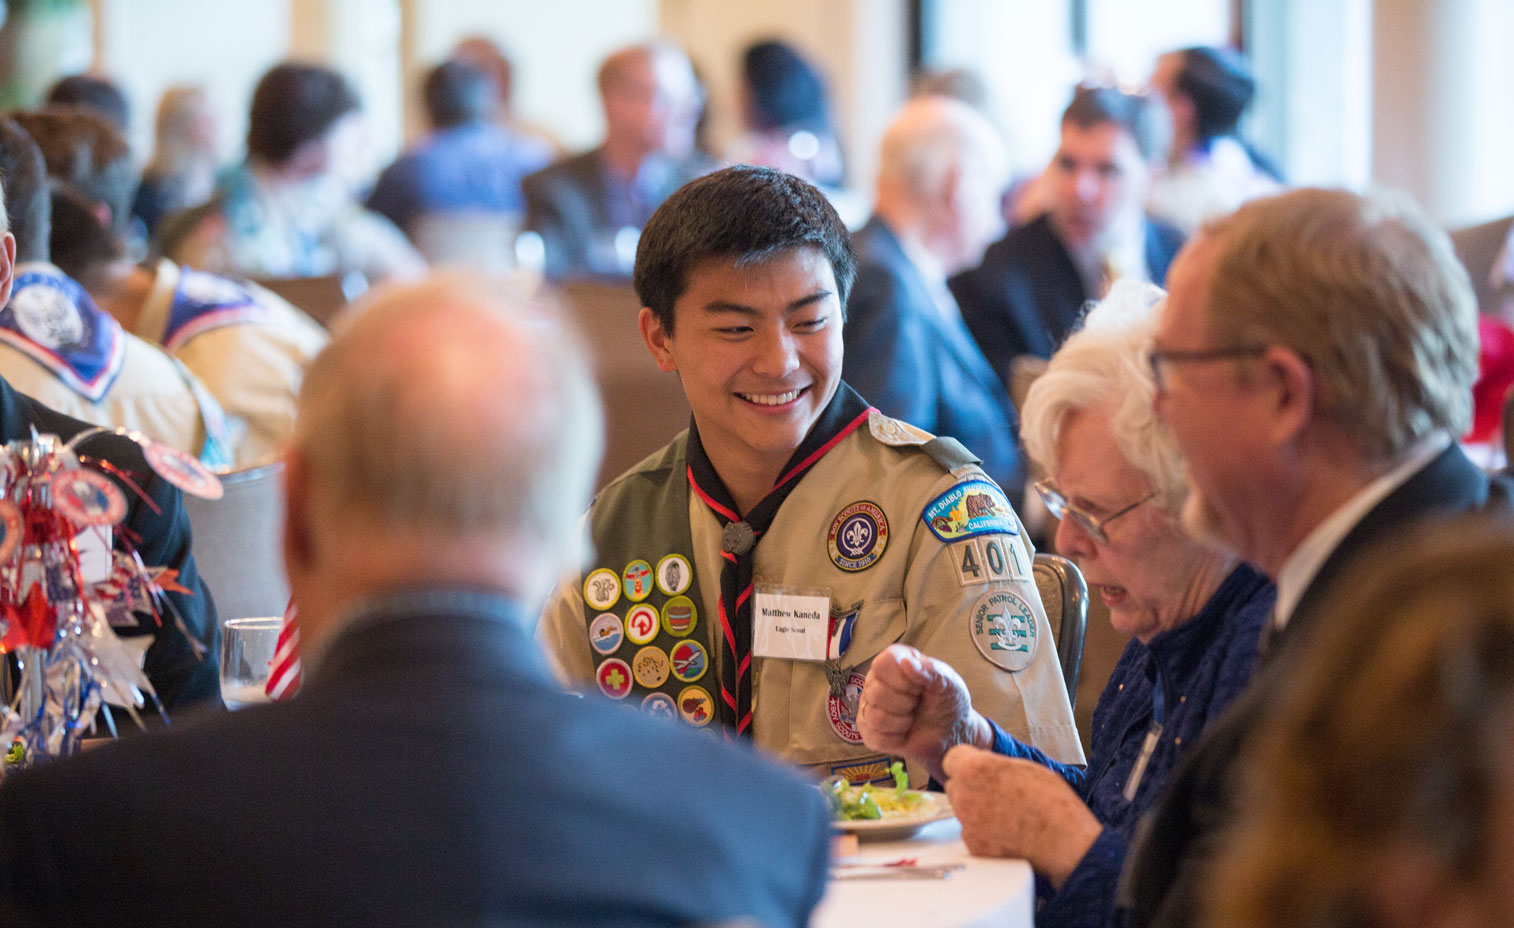 Our Annual Dinner Event Eagle Scouts and Alumni